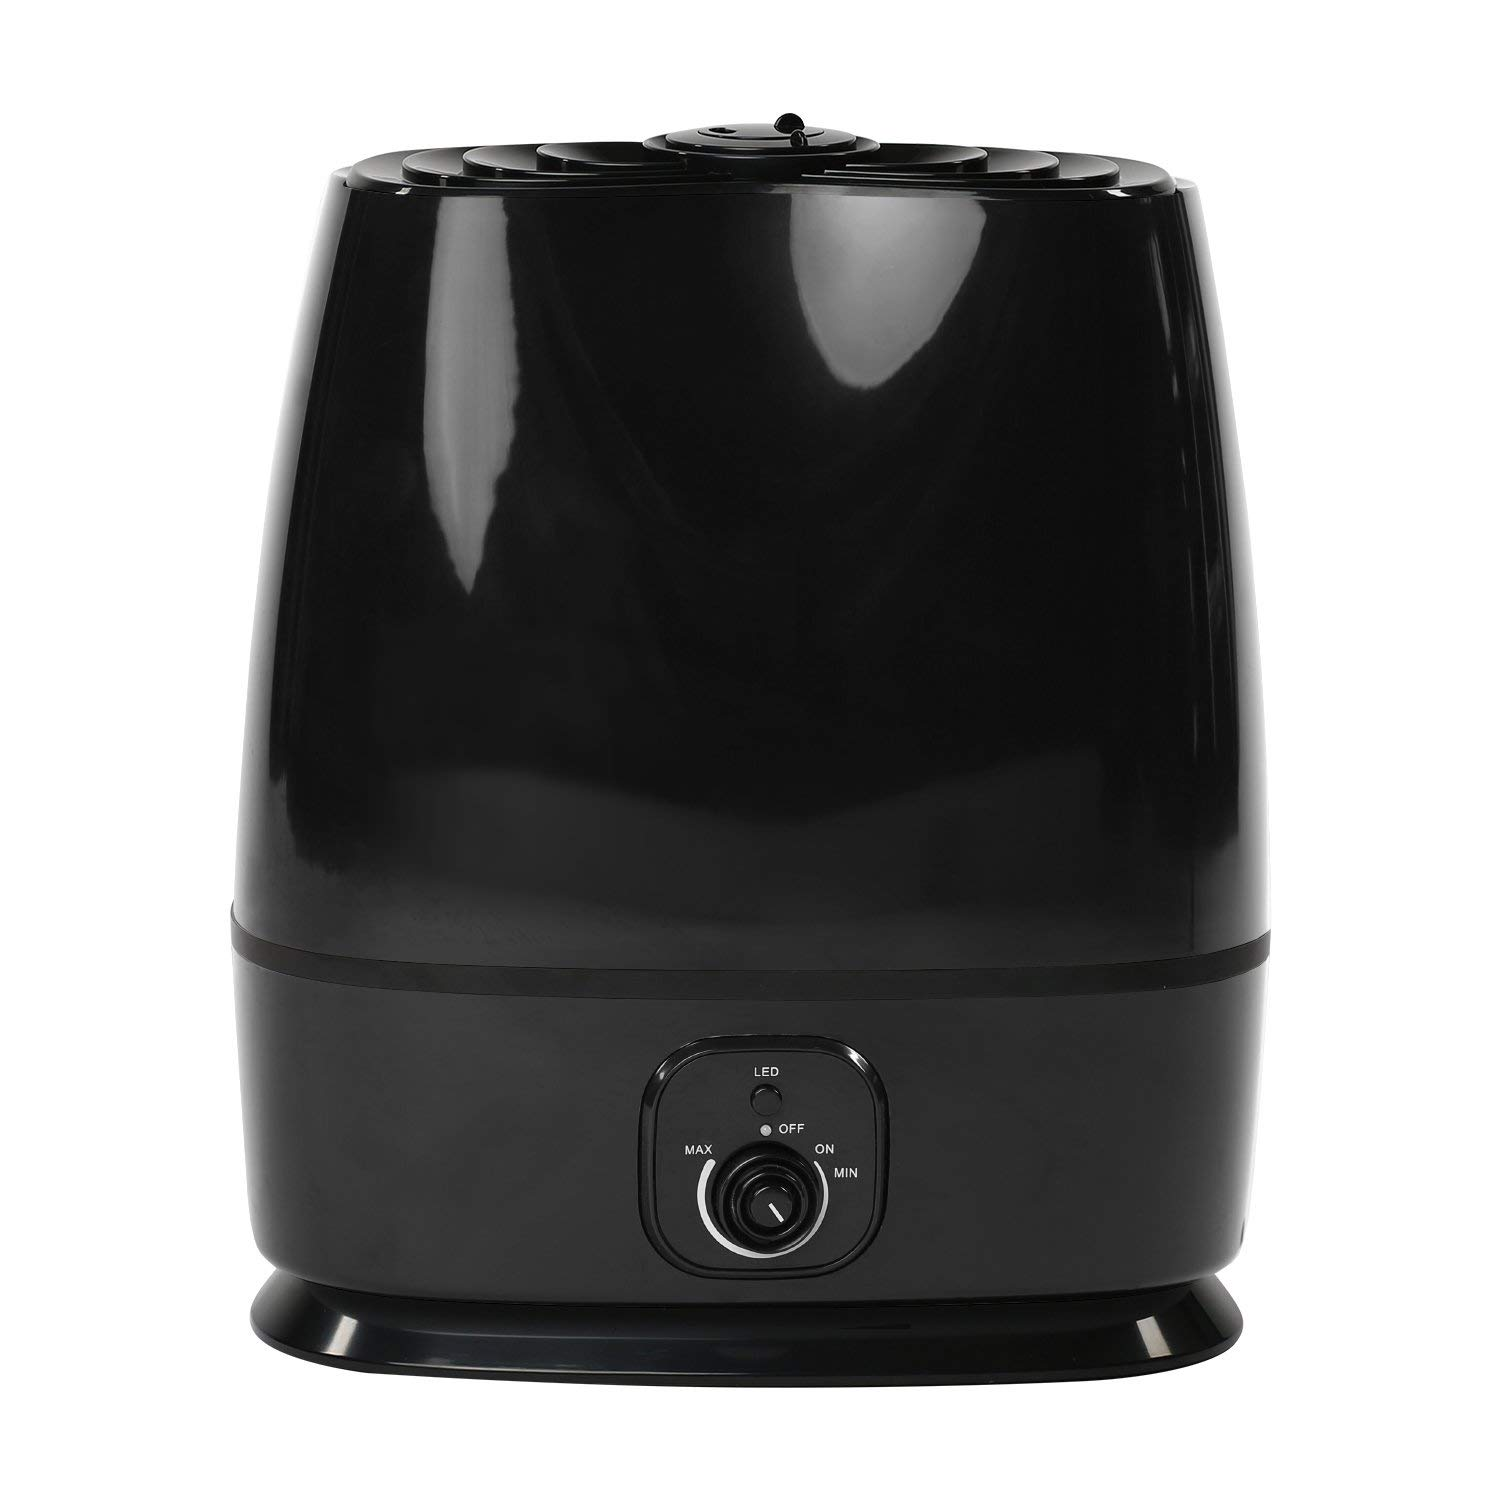 Everlasting Comfort Ultrasonic Cool Mist Best Humidifier Review by www.snoremagazine.com